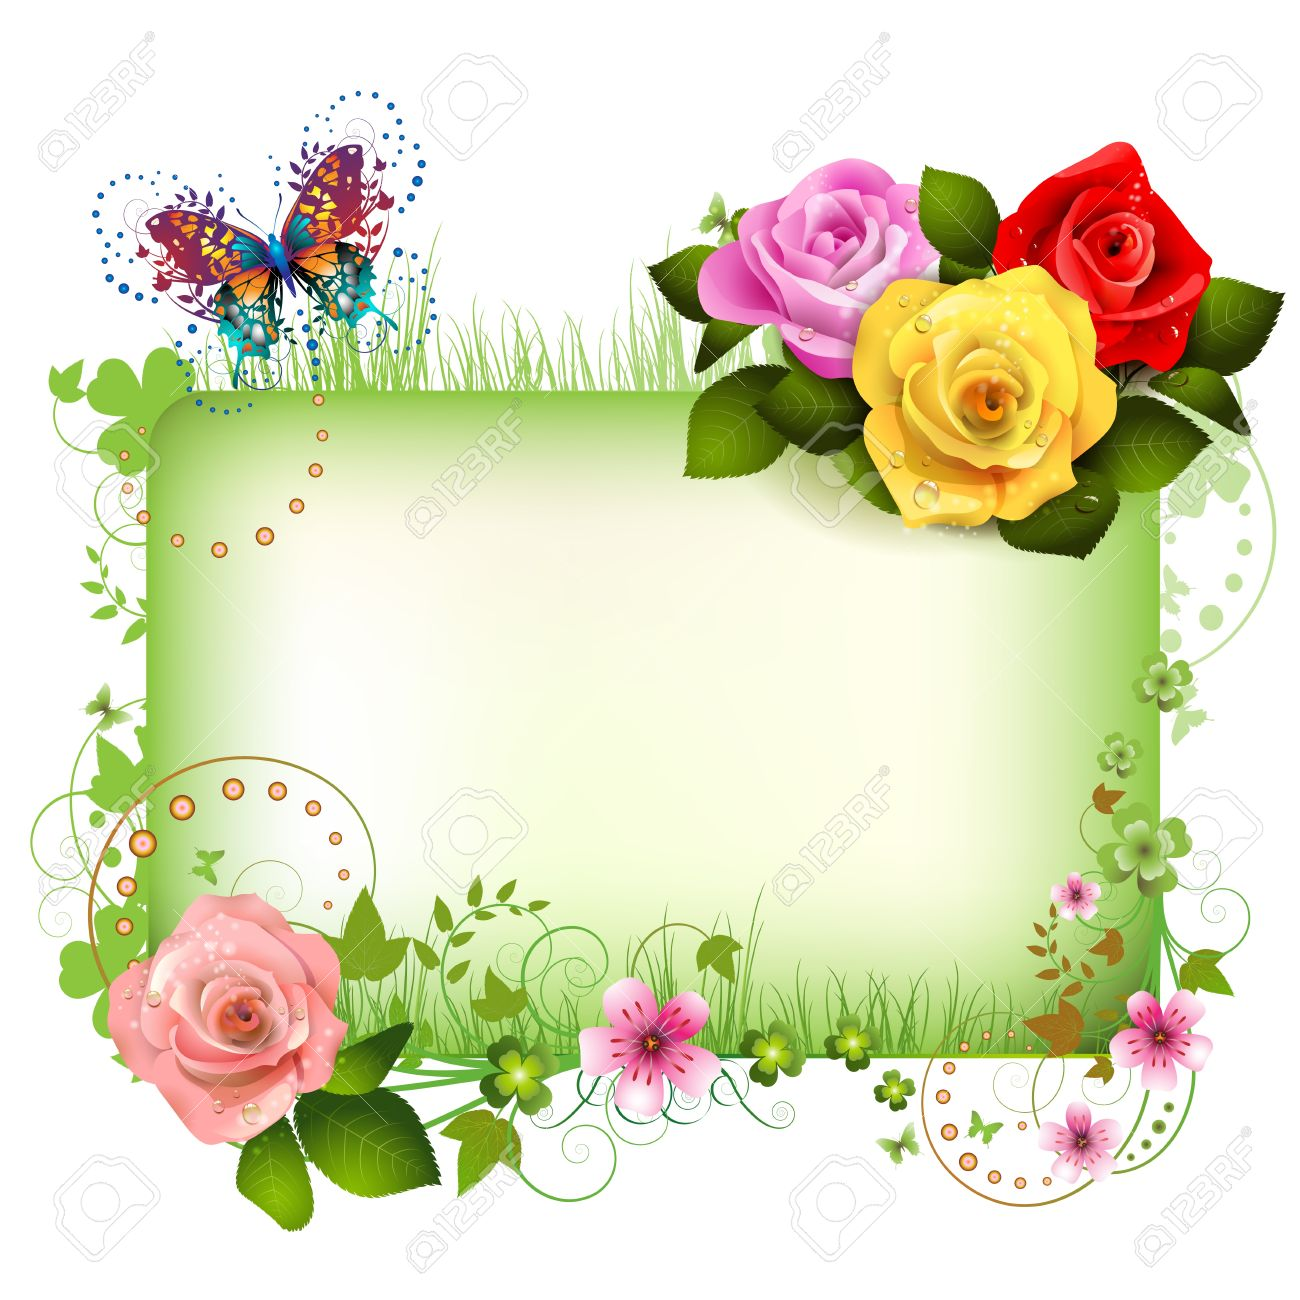 Banner with flowers and butterflies Stock Vector - 12774117